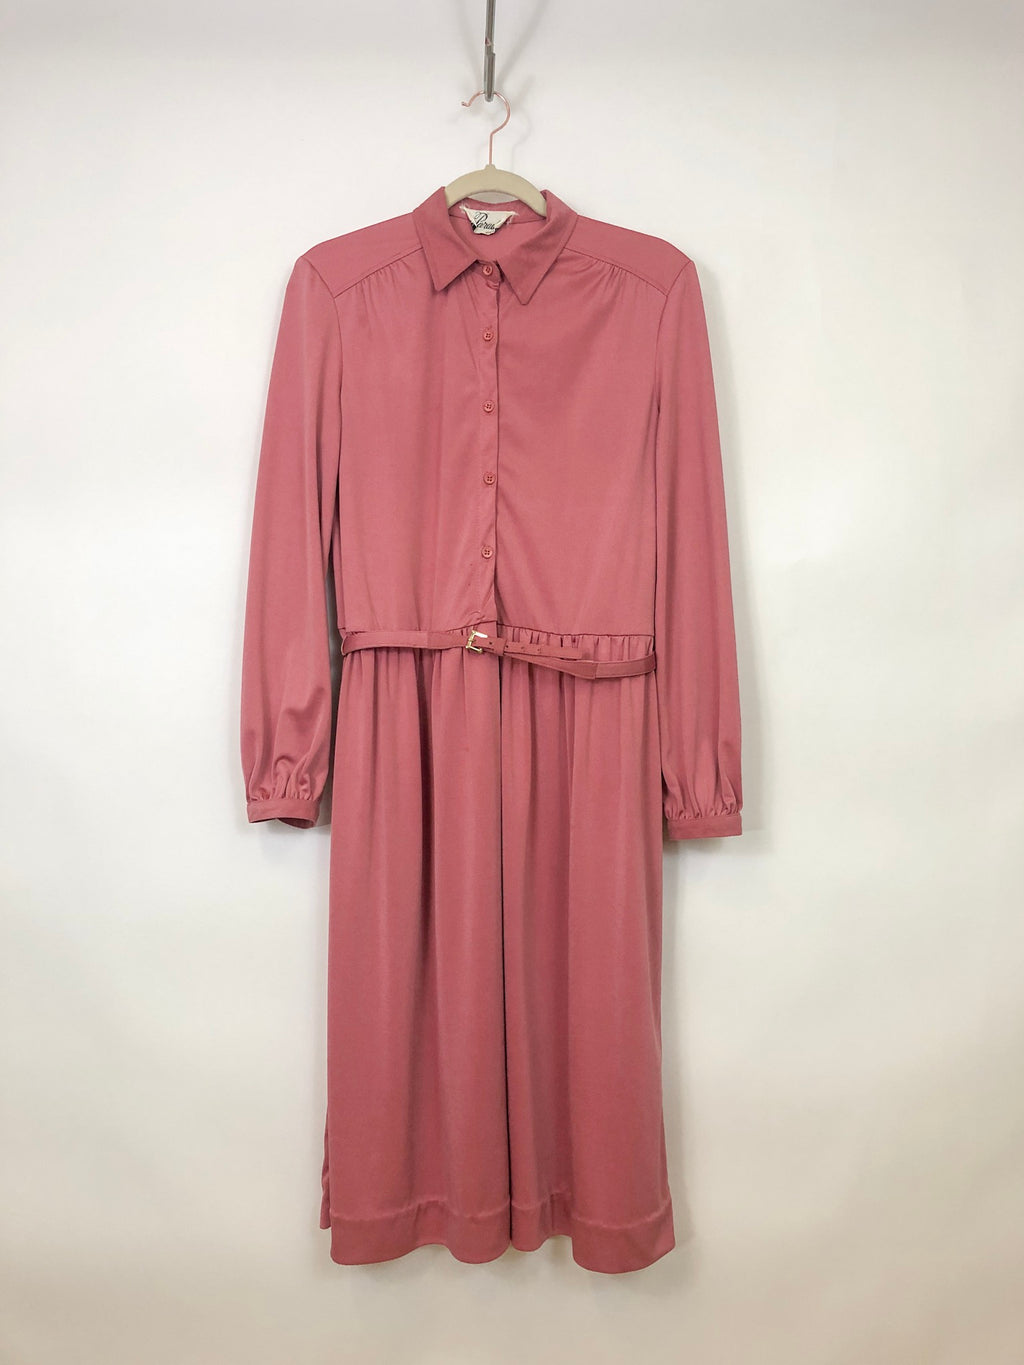 rose pink long sleeve dress